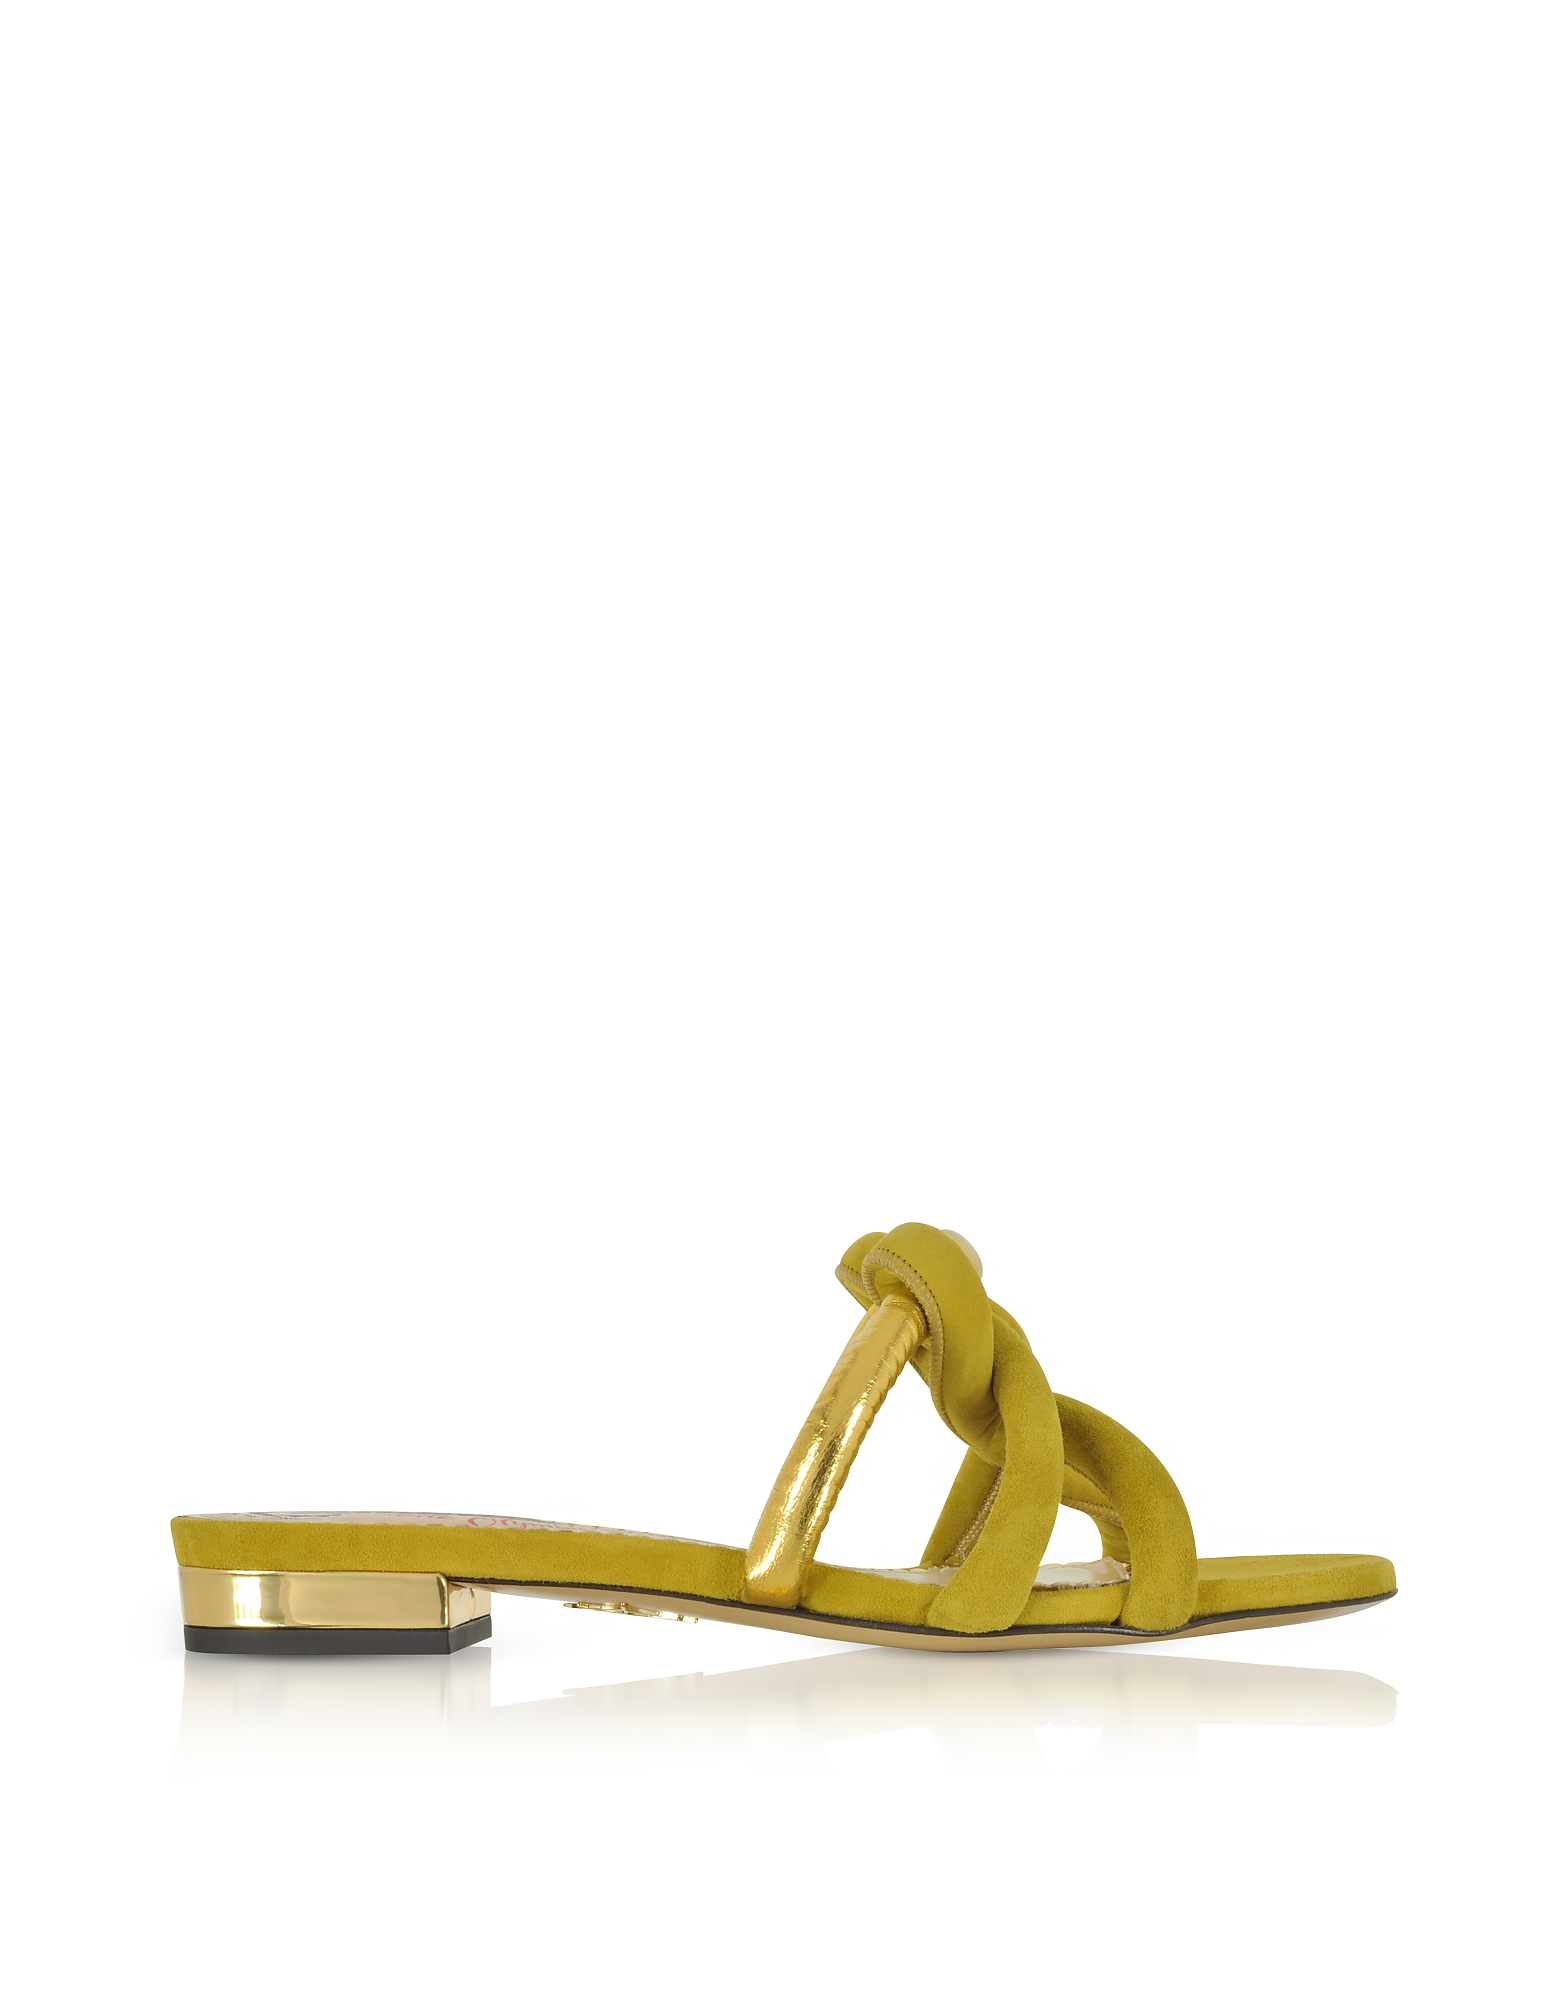 Charlotte Olympia Designer Shoes, Thalia Olive Green Suede and Gold Metallic Leather Slide Sandals